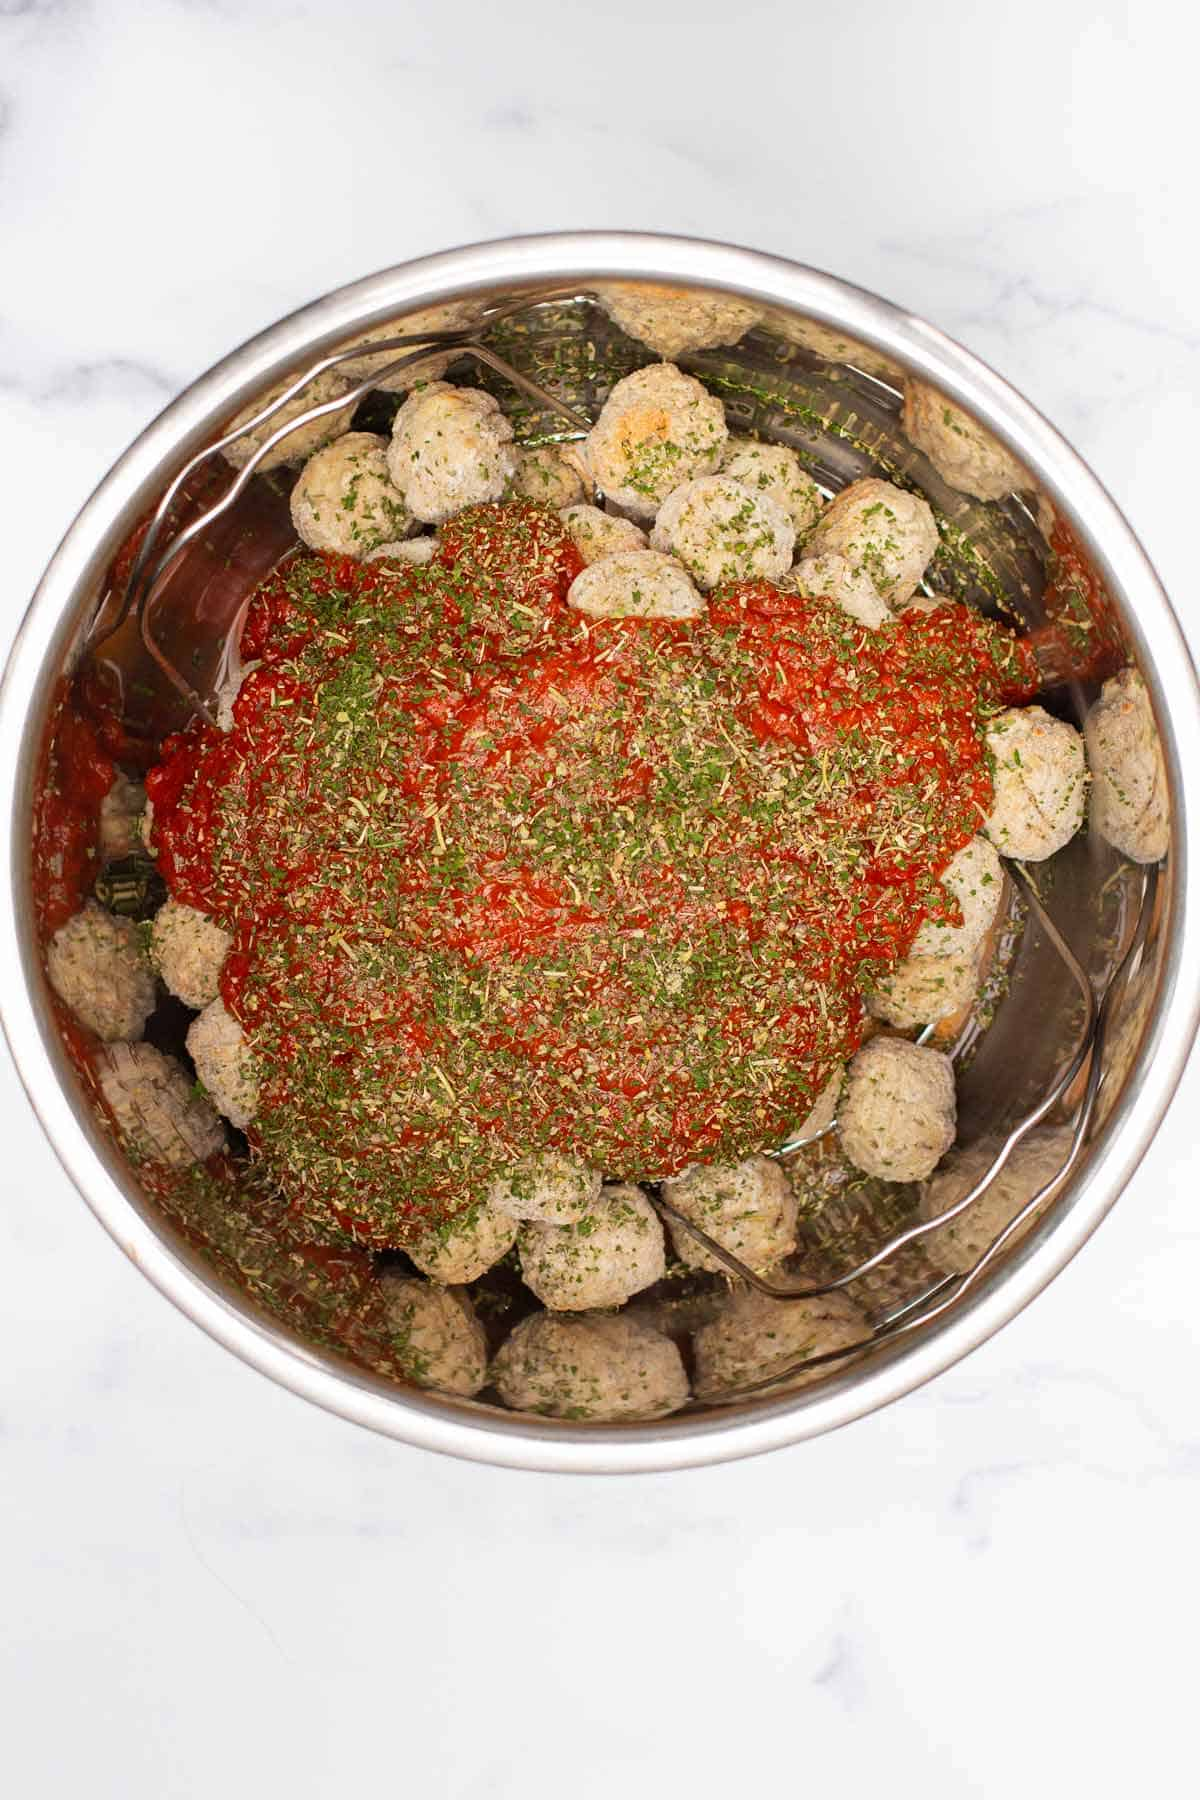 Water, meatballs, pasta sauce, Italian seasoning, and parsley in the Instant Pot with a trivet at the base.